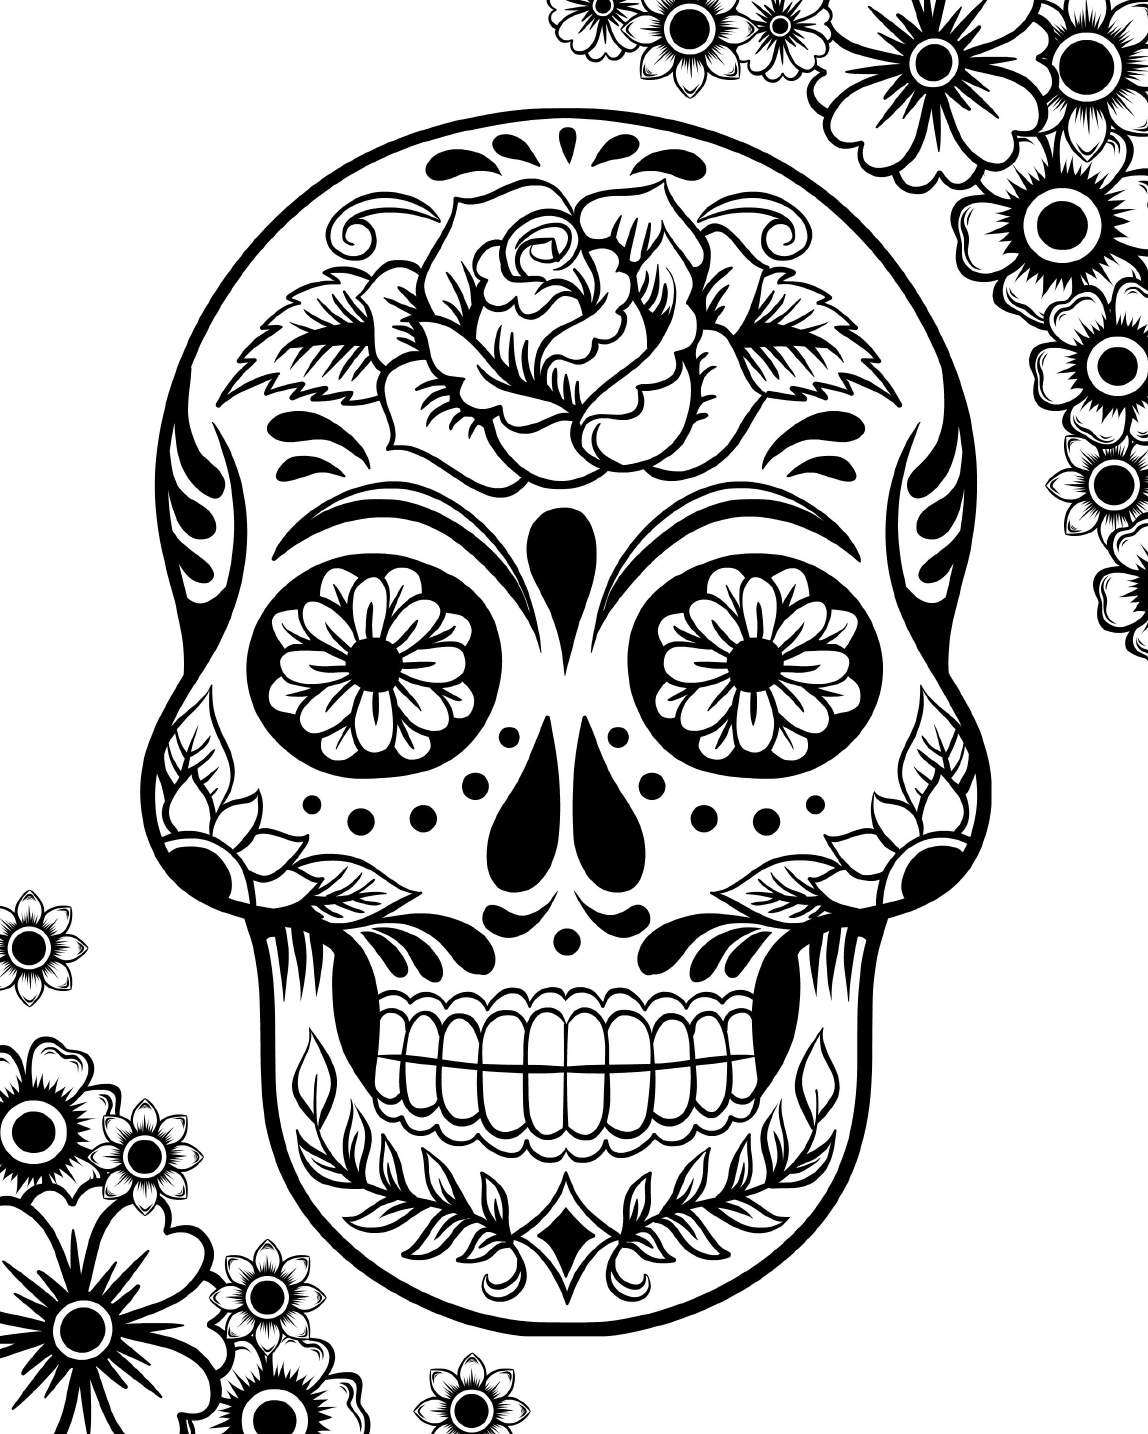 skulls to color sugar skull coloring page coloring home to skulls color